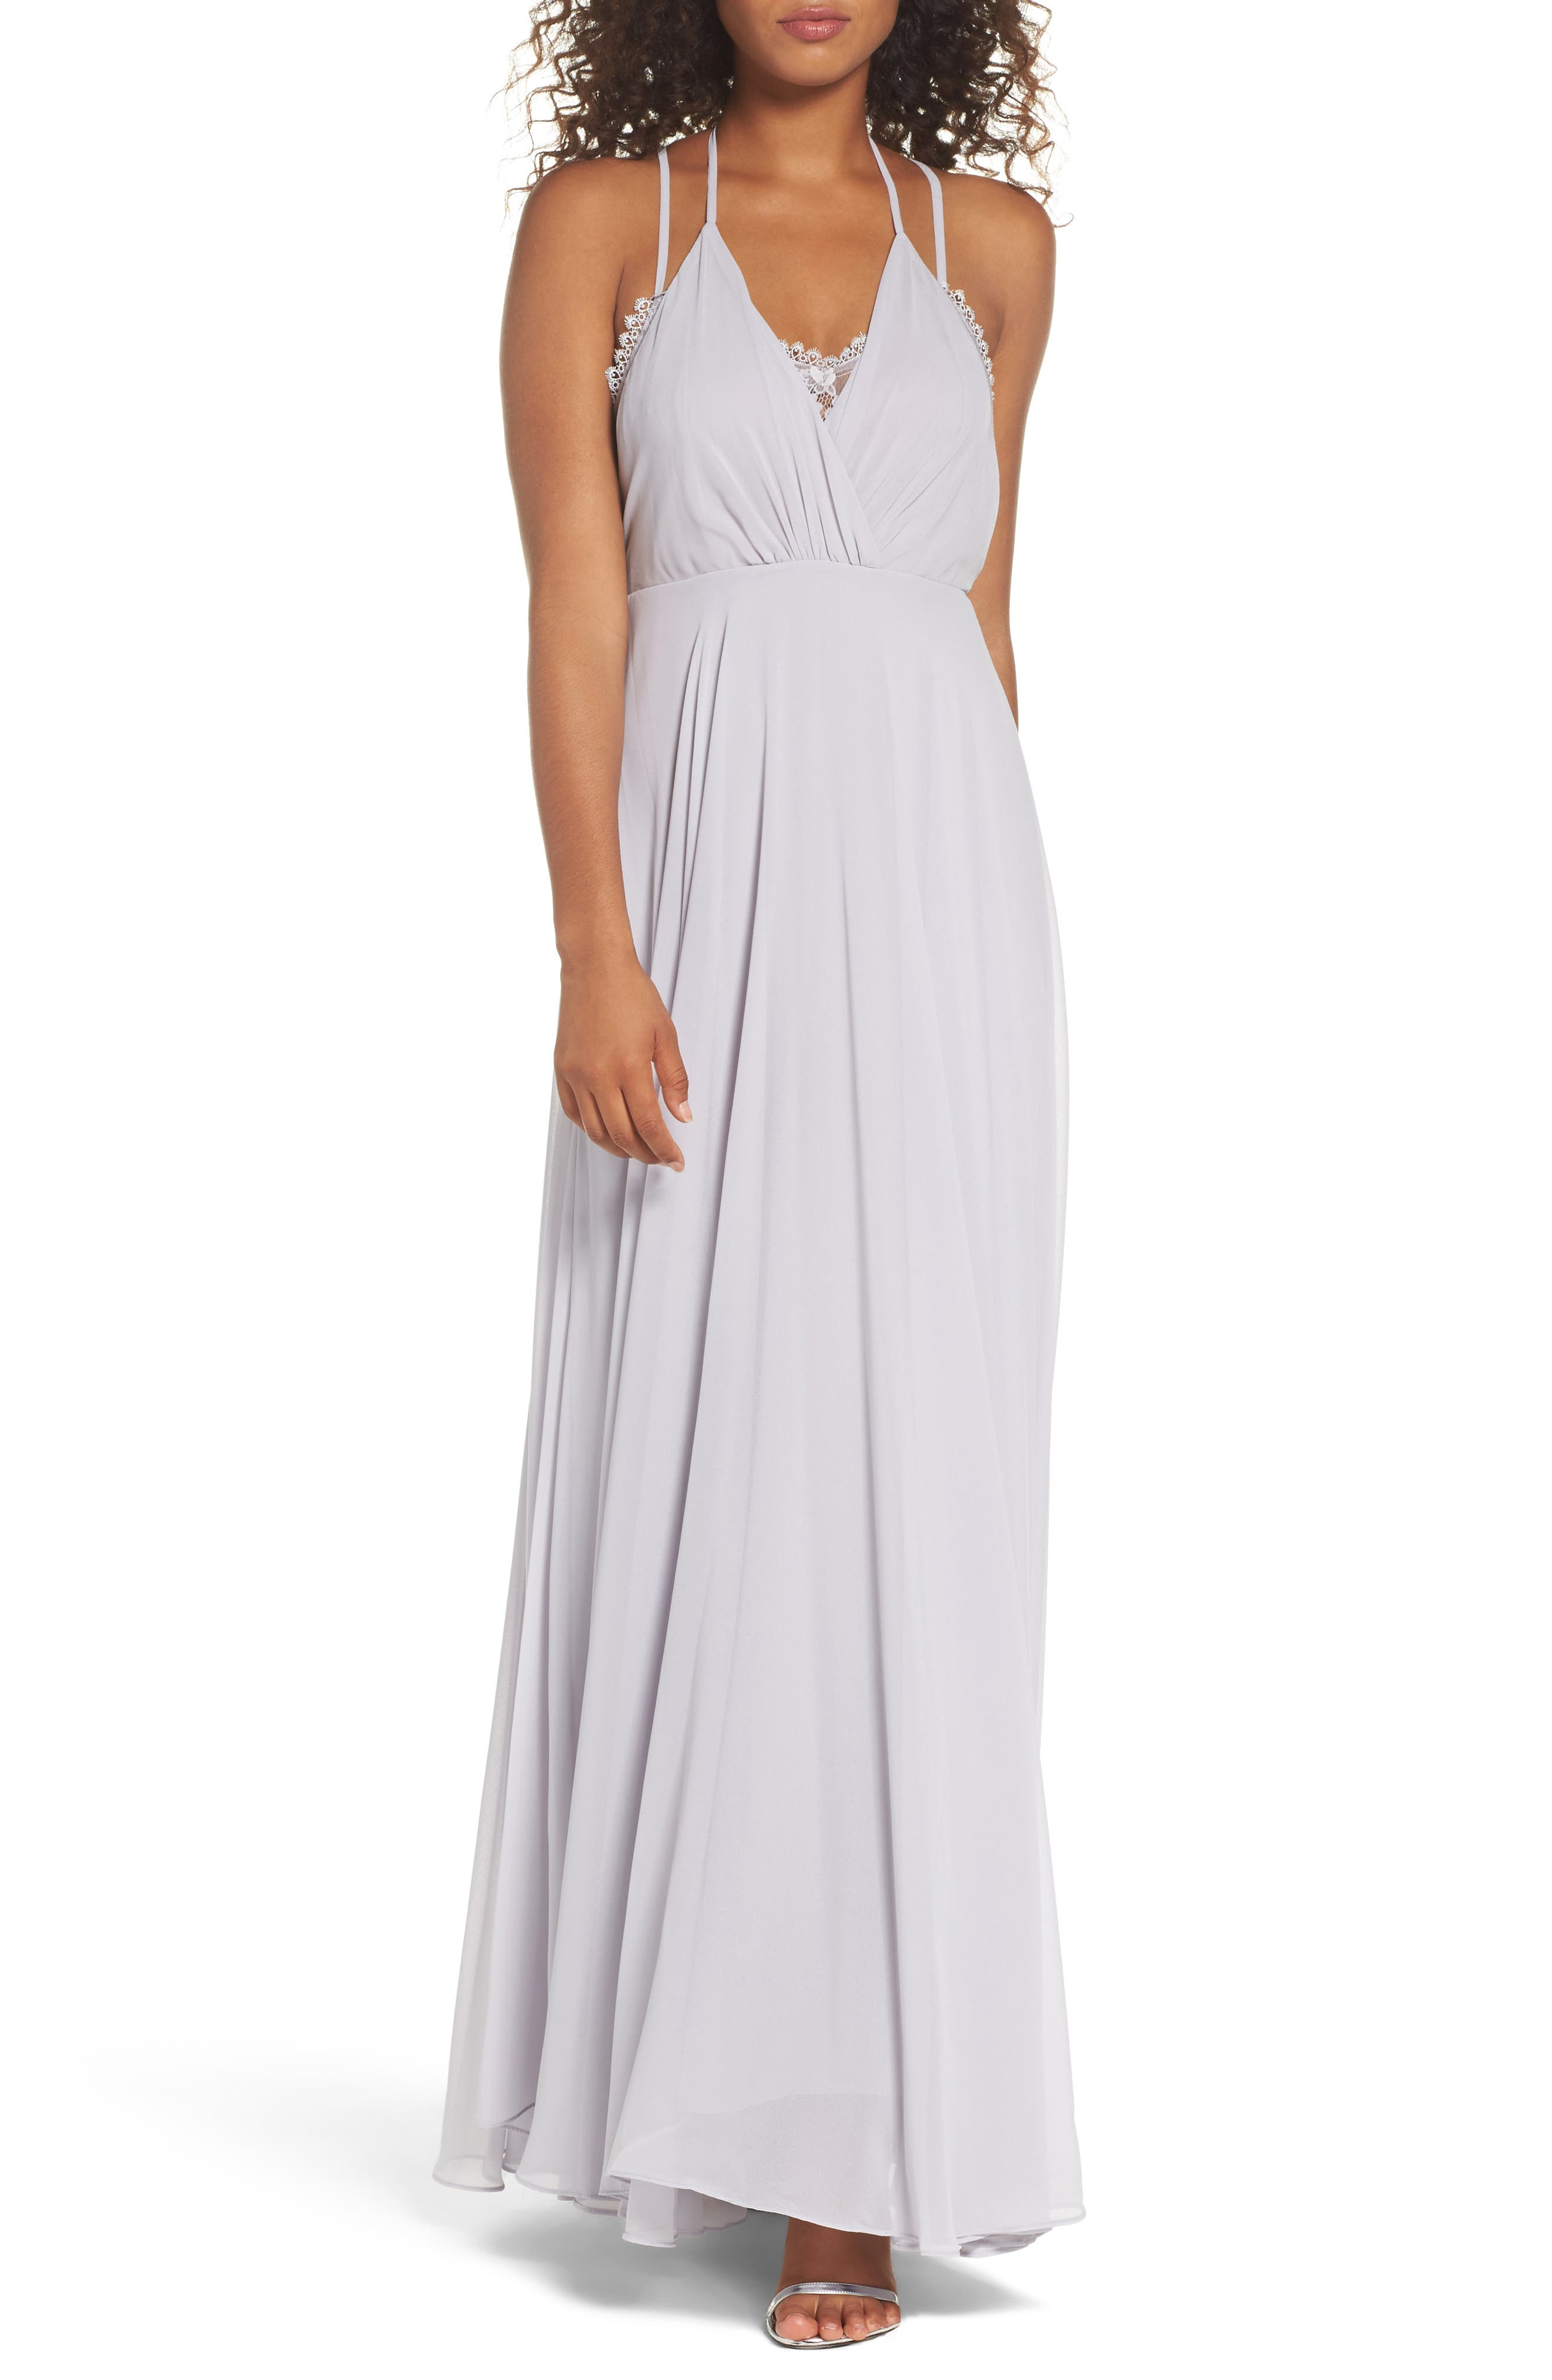 Celebrate the Moment Lace Trim Chiffon Maxi Dress,                         Main,                         color, Grey